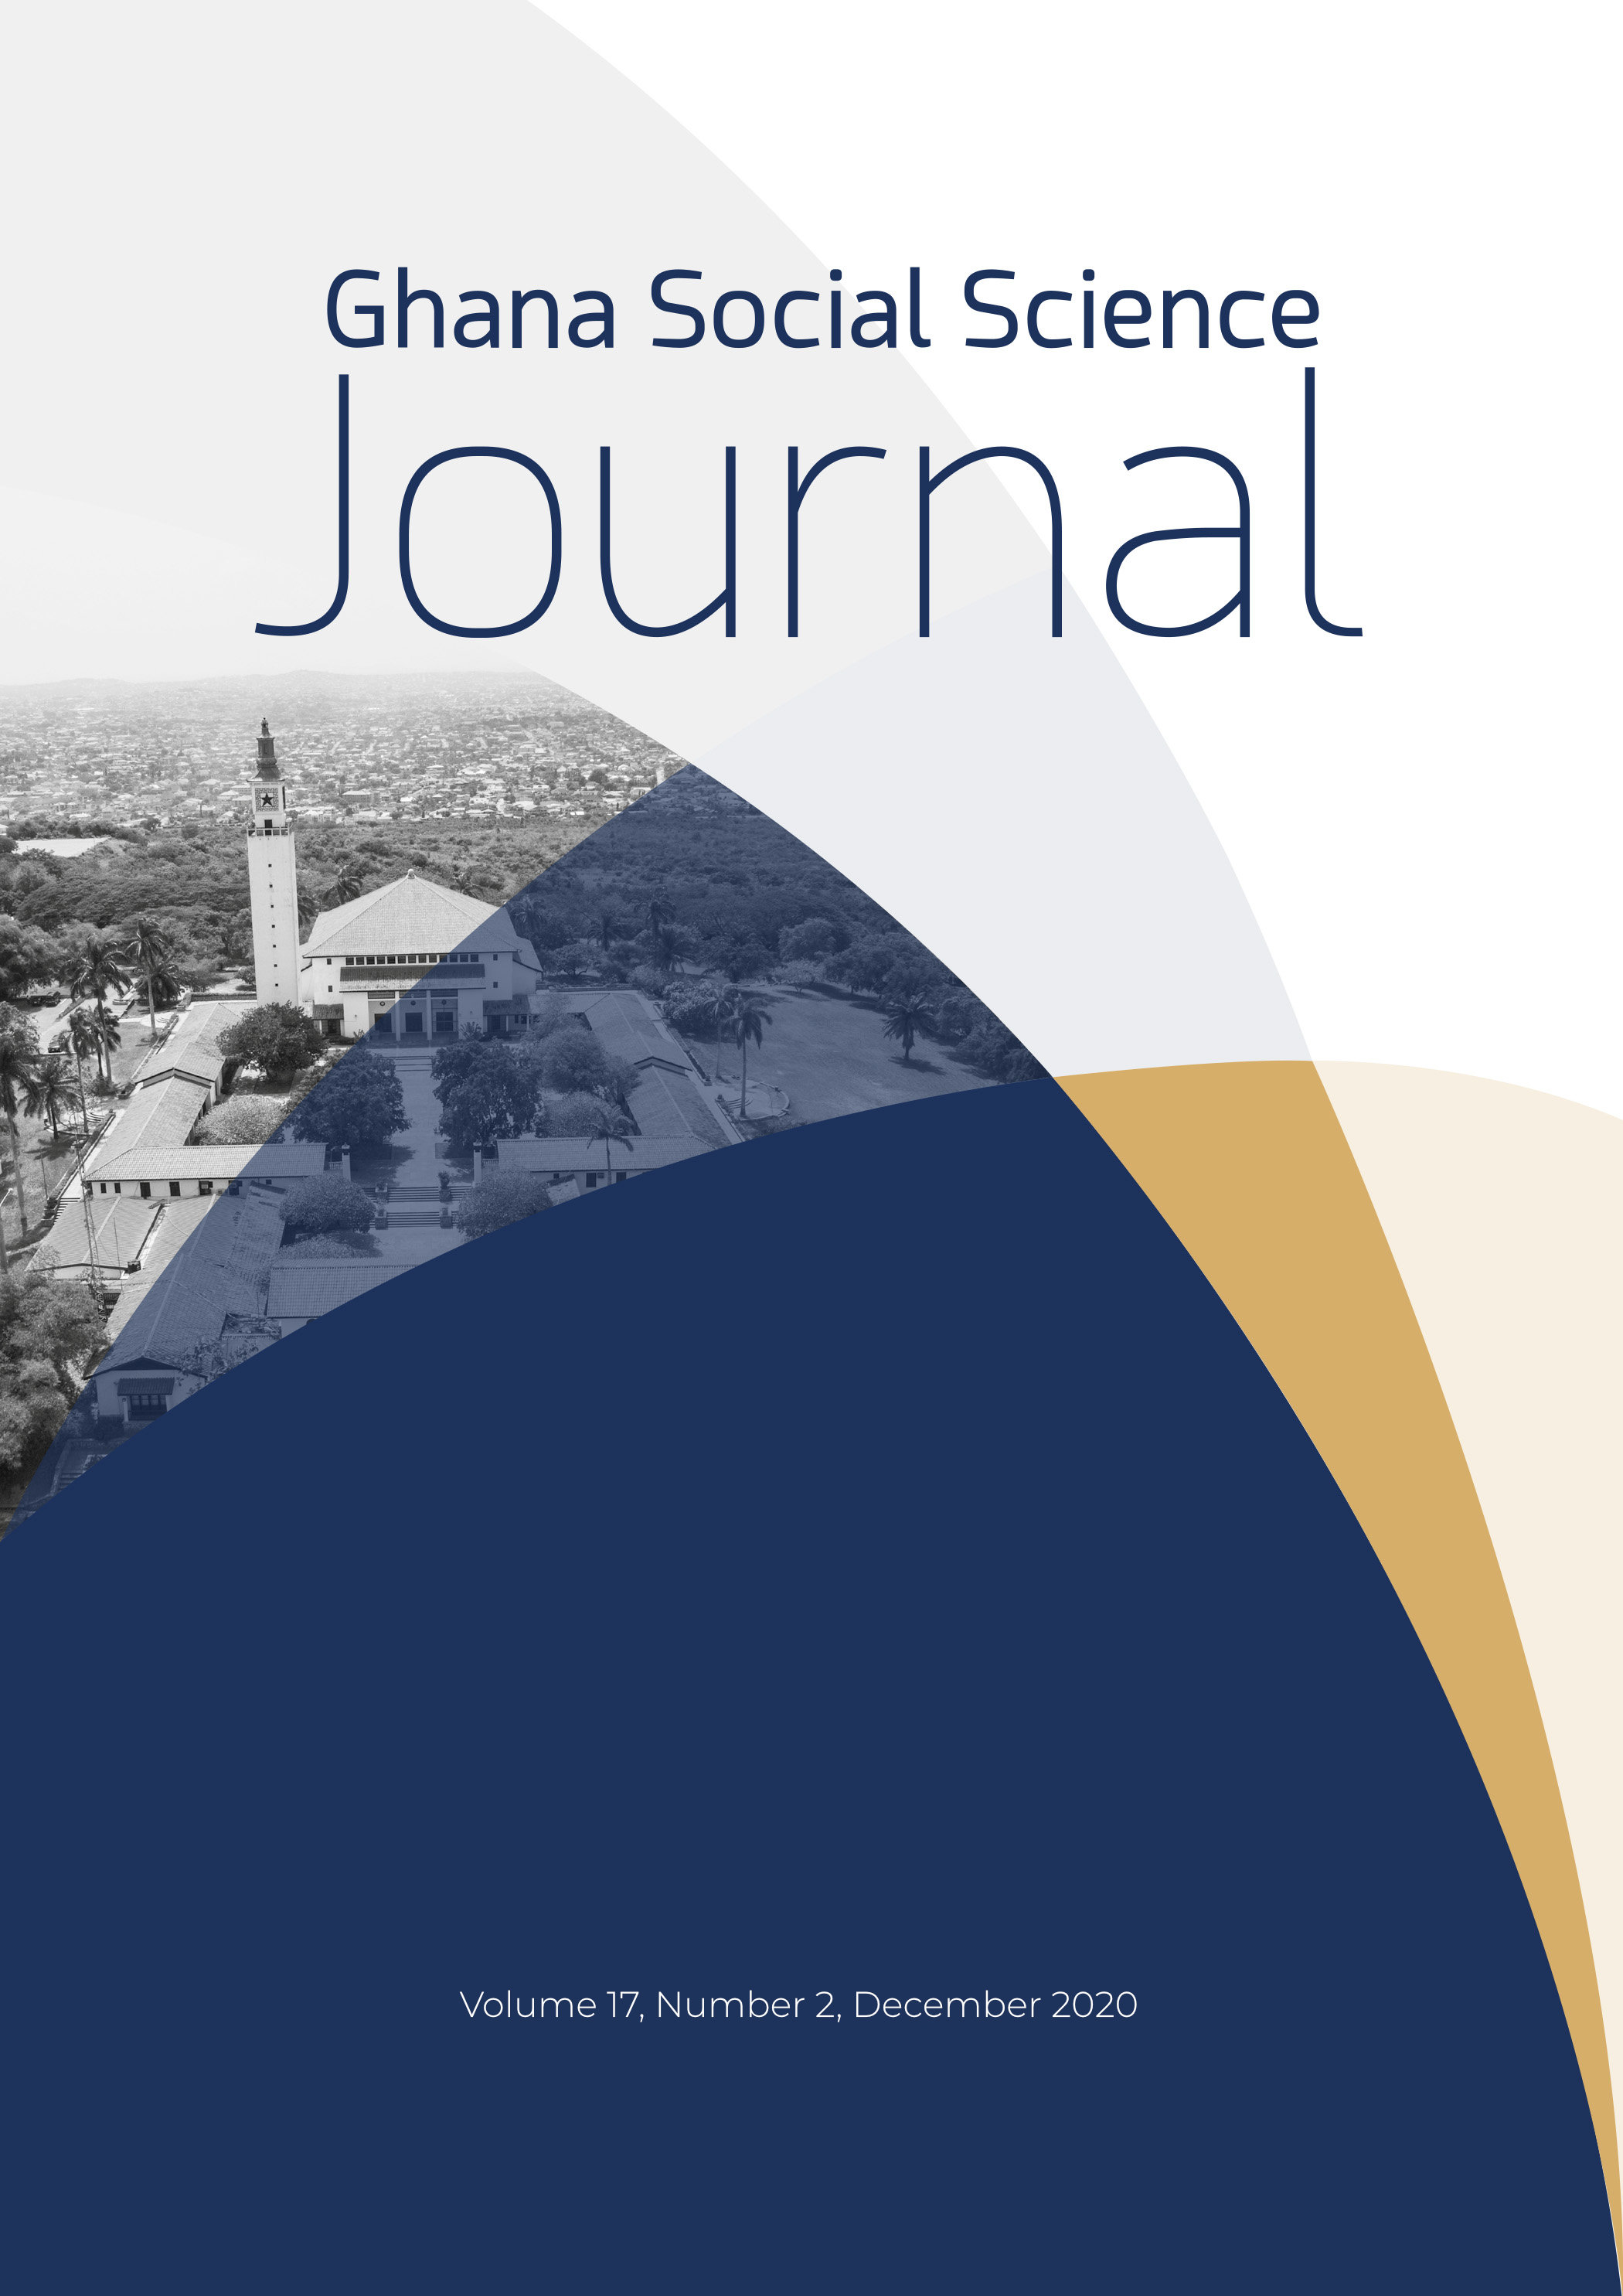 Ghana Social Science Journal